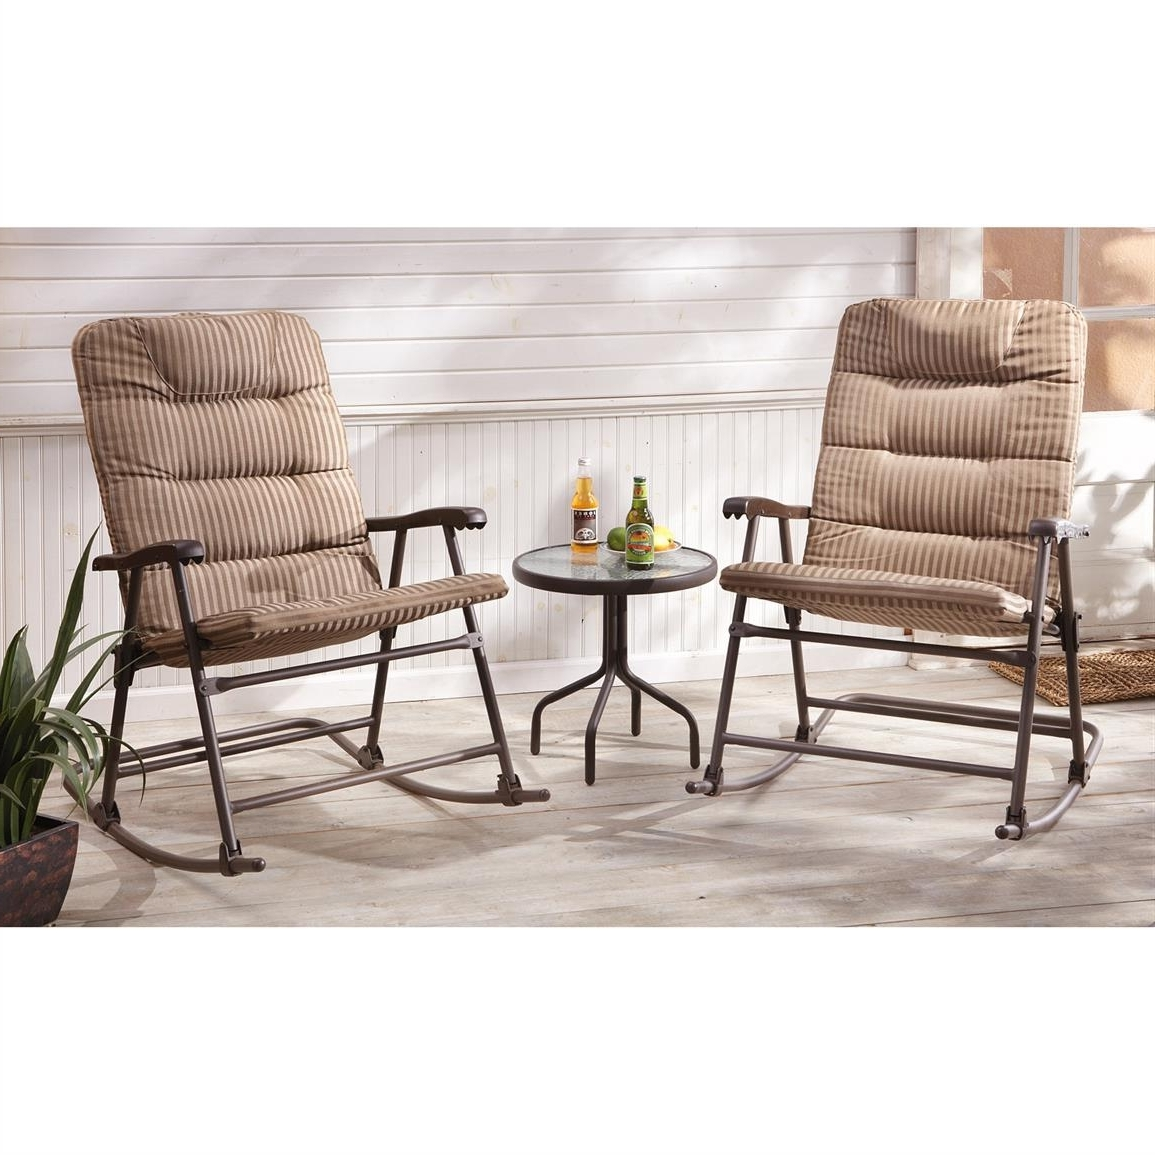 Most Popular Castlecreek Padded Outdoor Rocking Chair Set Piece Setup Patio Inside Patio Rocking Chairs Sets (View 3 of 15)